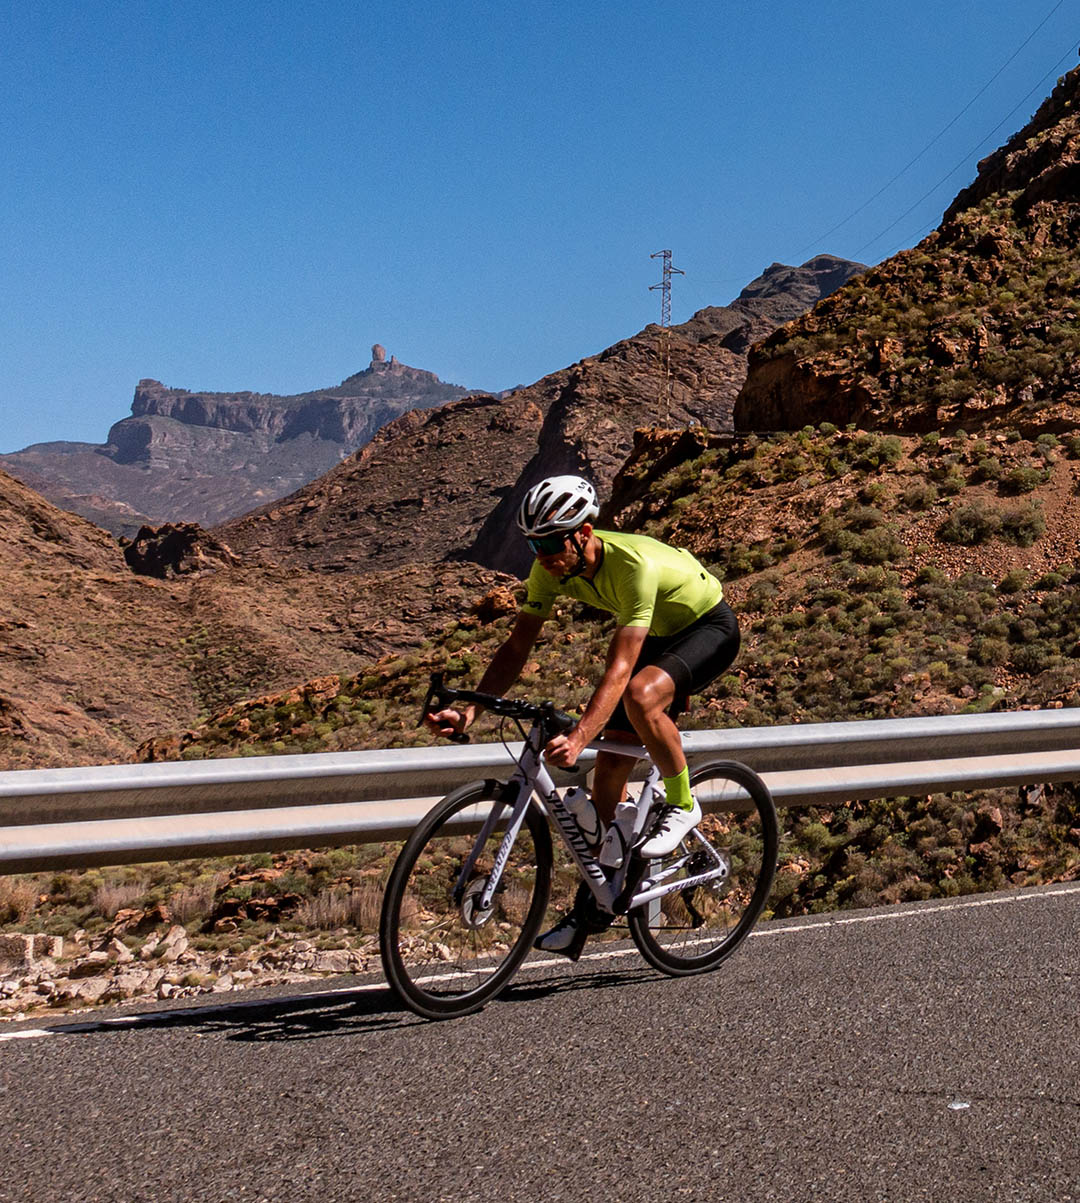 lime road cycling kit made by premium cycling apparel Luxa brand in Europe. Training camp in Gran Canaria